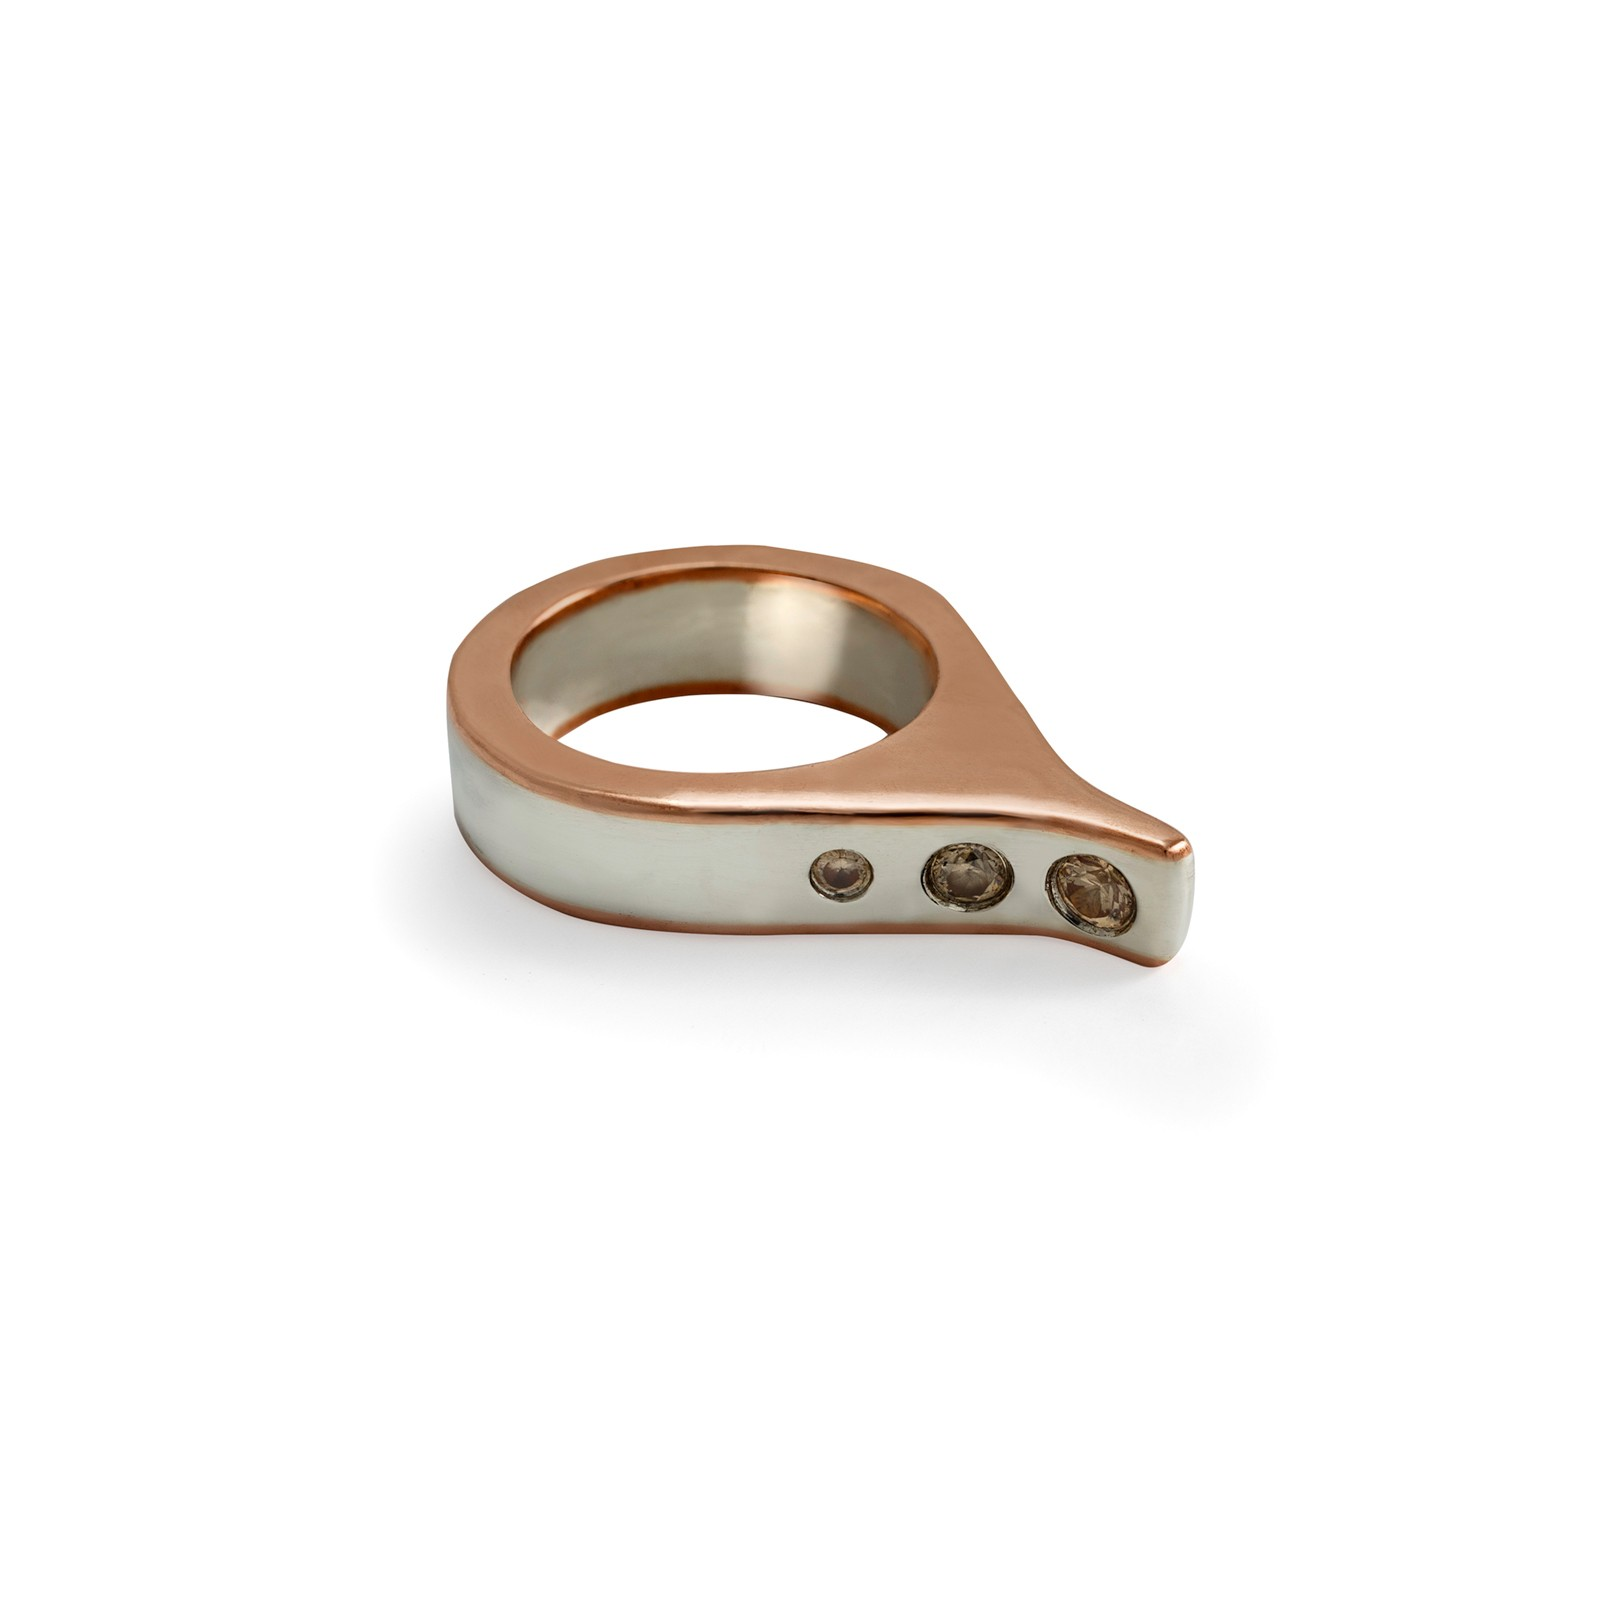 Silver 925 and copper 3D extended ring